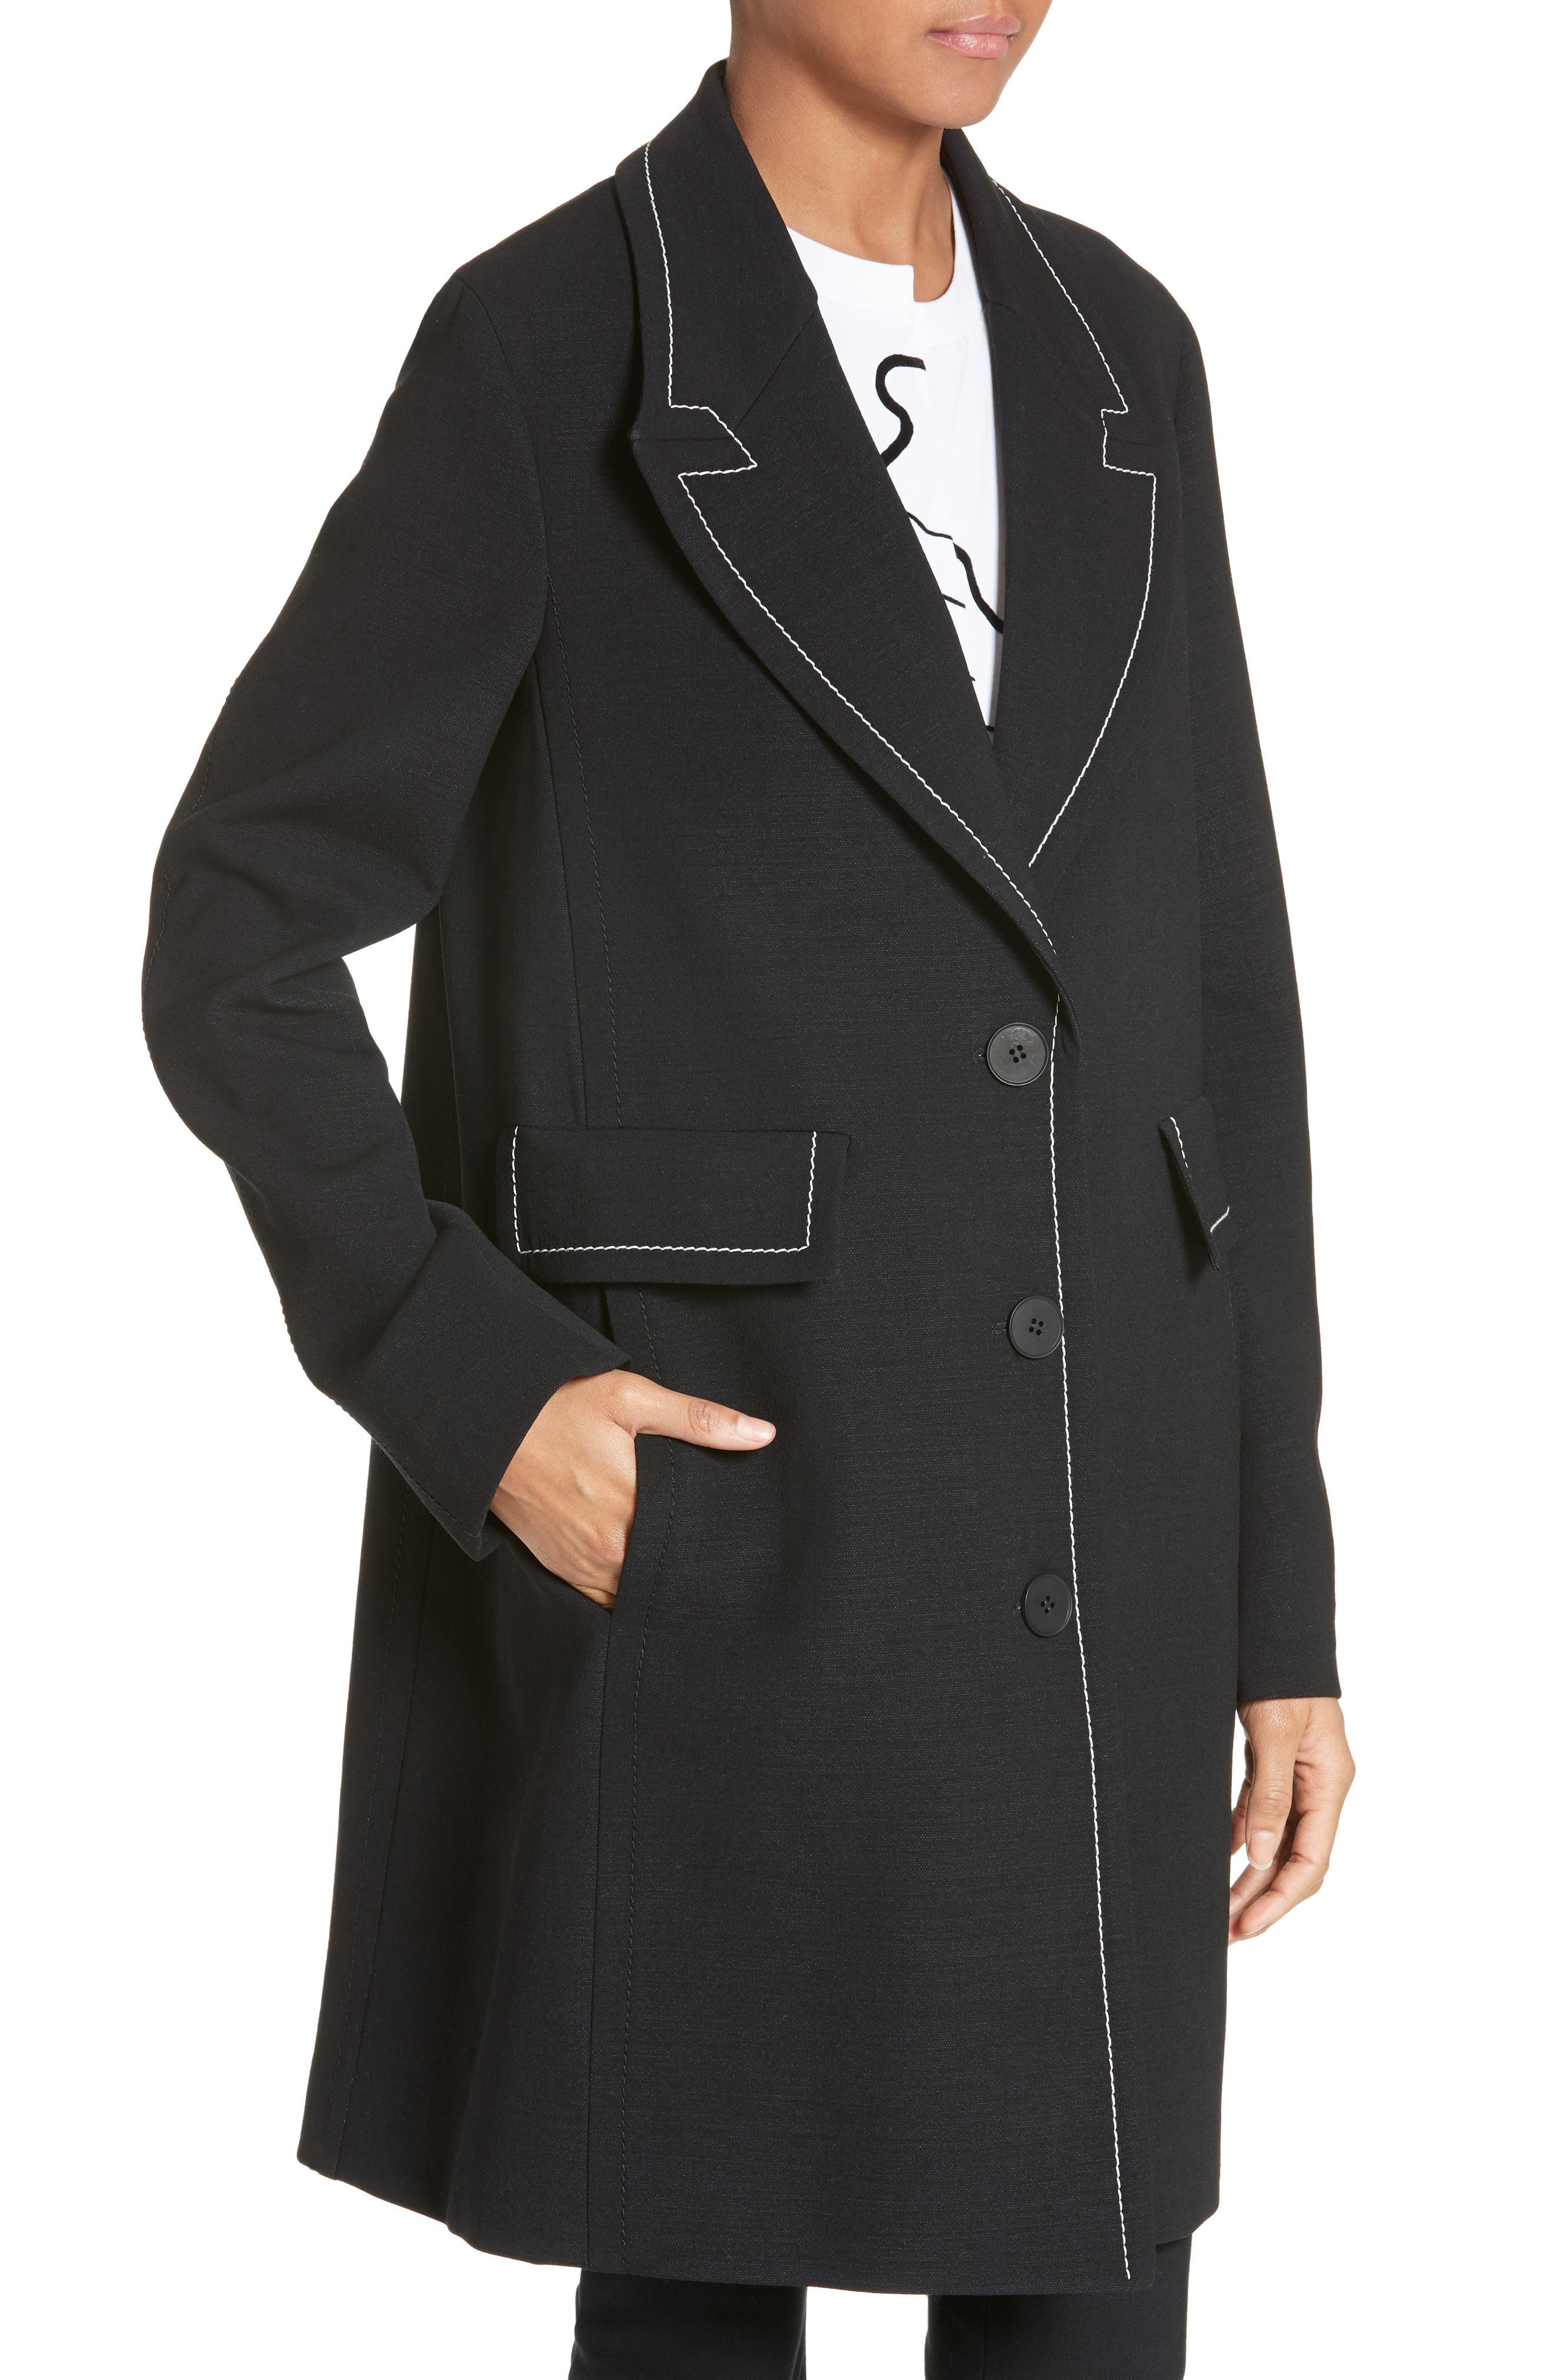 Marcelline Topstitch Double Face Wool Coat,                             Alternate thumbnail 4, color,                             001